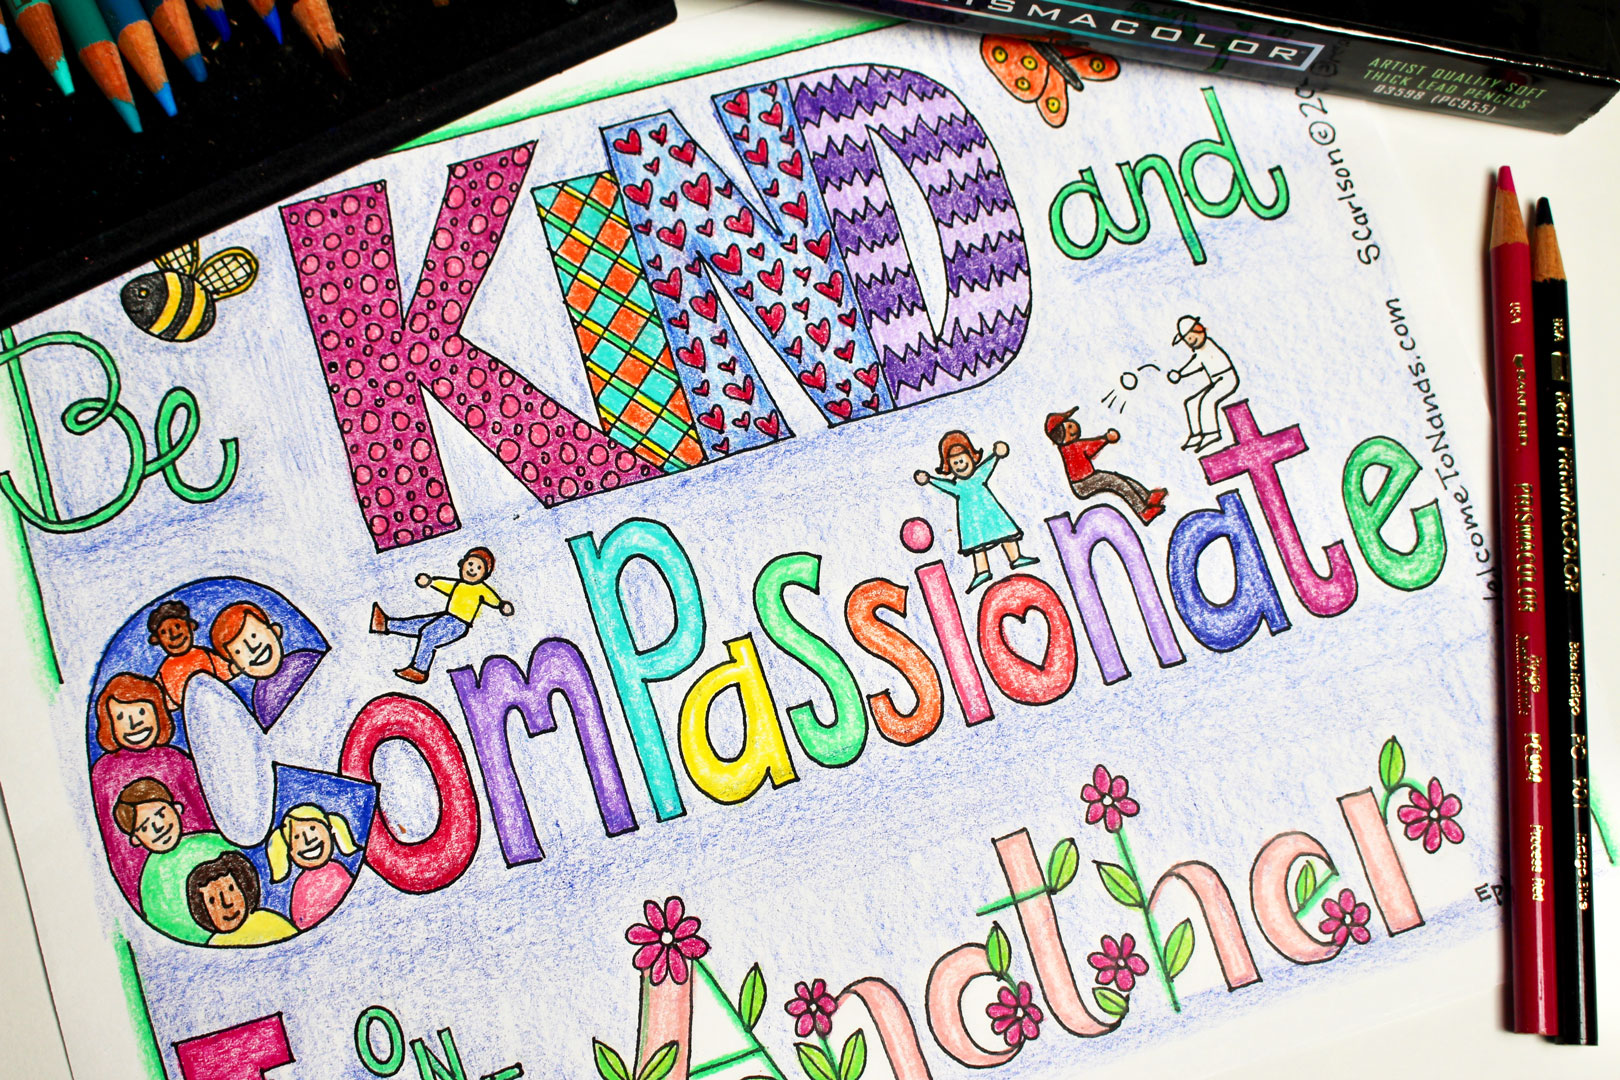 Free Kindness Coloring Page And Book List For Kids - Welcome To Nana's